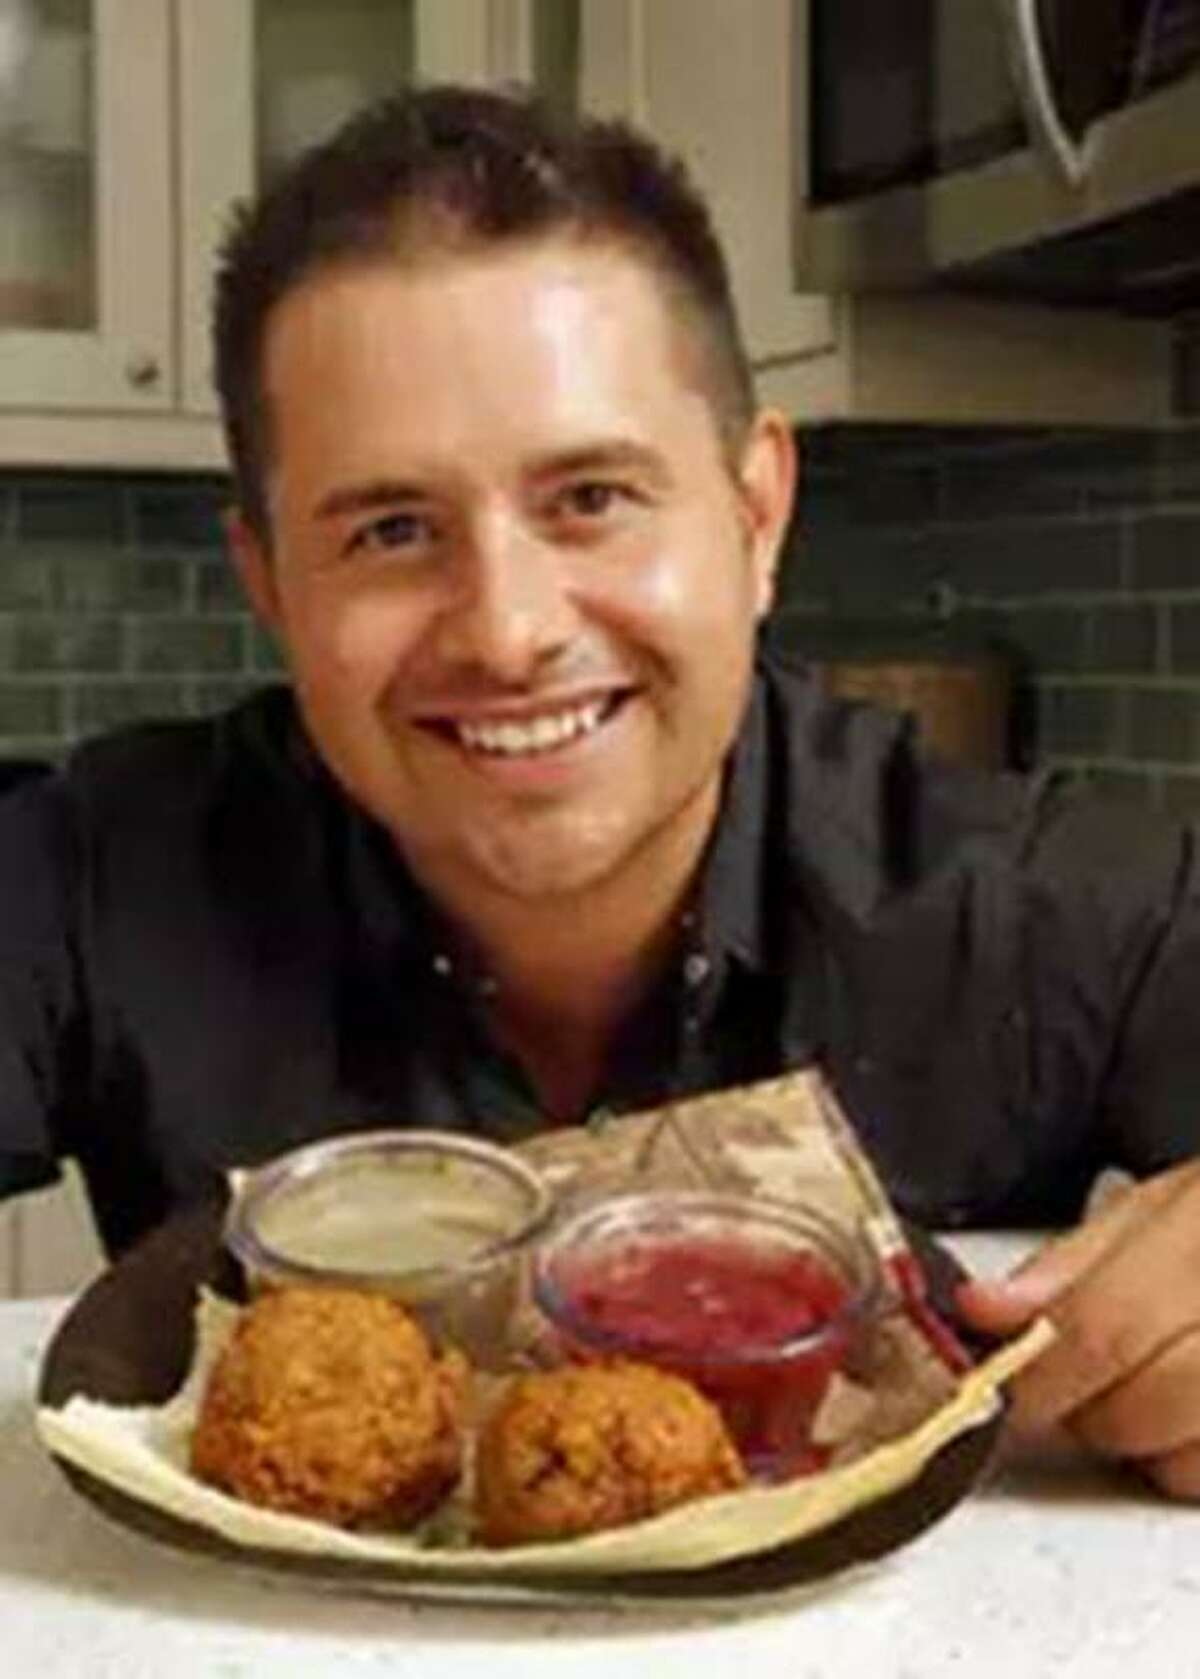 """Justin Martinez, who lives in Arlington and has a career in real estate, is a three-time winner of the """"most creative"""" award at the Big Tex Choice Awards. He won in 2013 with his Fried Thanksgiving Dinner balls (pictured). This year, he is in the hunt for best overall for his Tamale Donut. His father Rudy was born and raised in San Antonio and has been a fixture at the State Fair of Texas since 1978."""